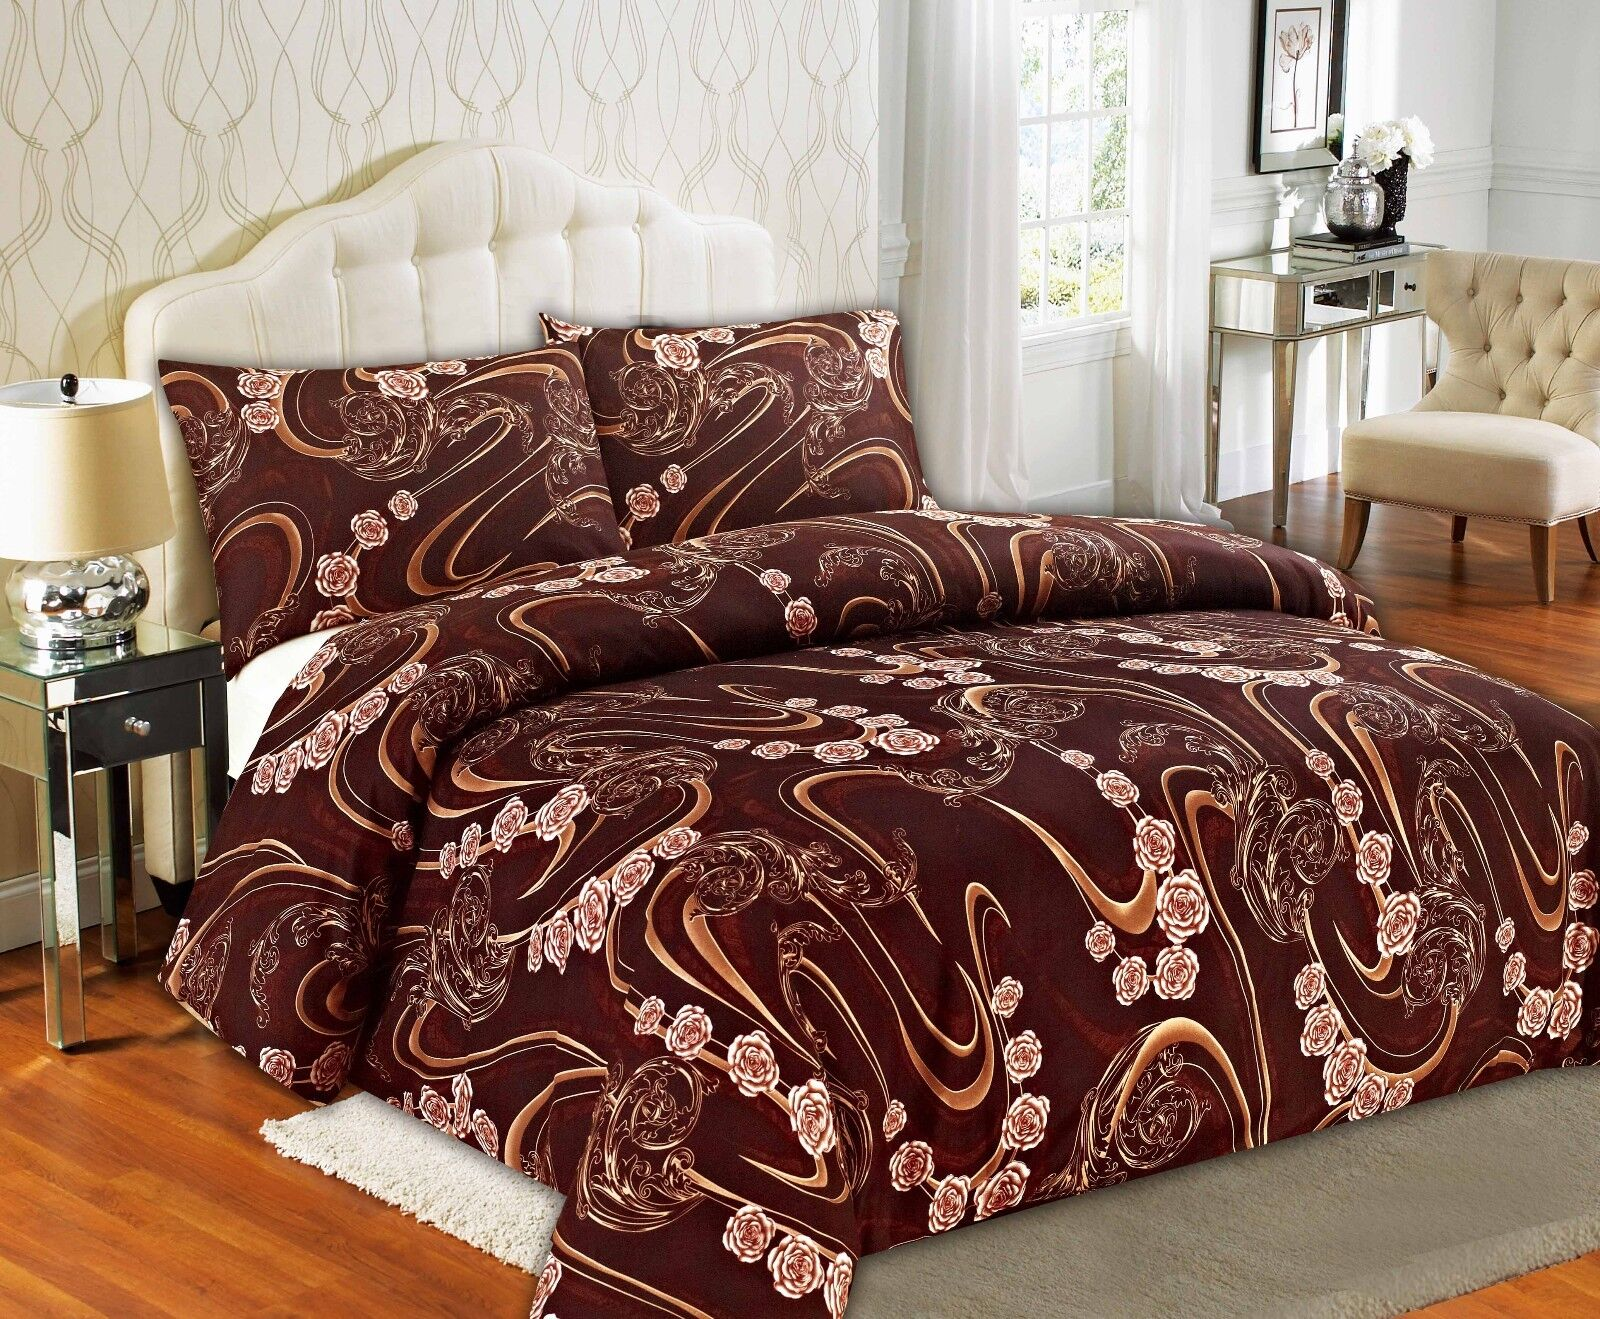 Tache Melted gold Brown Tan Beige pinks Swirl Floral Duvet Cover Set